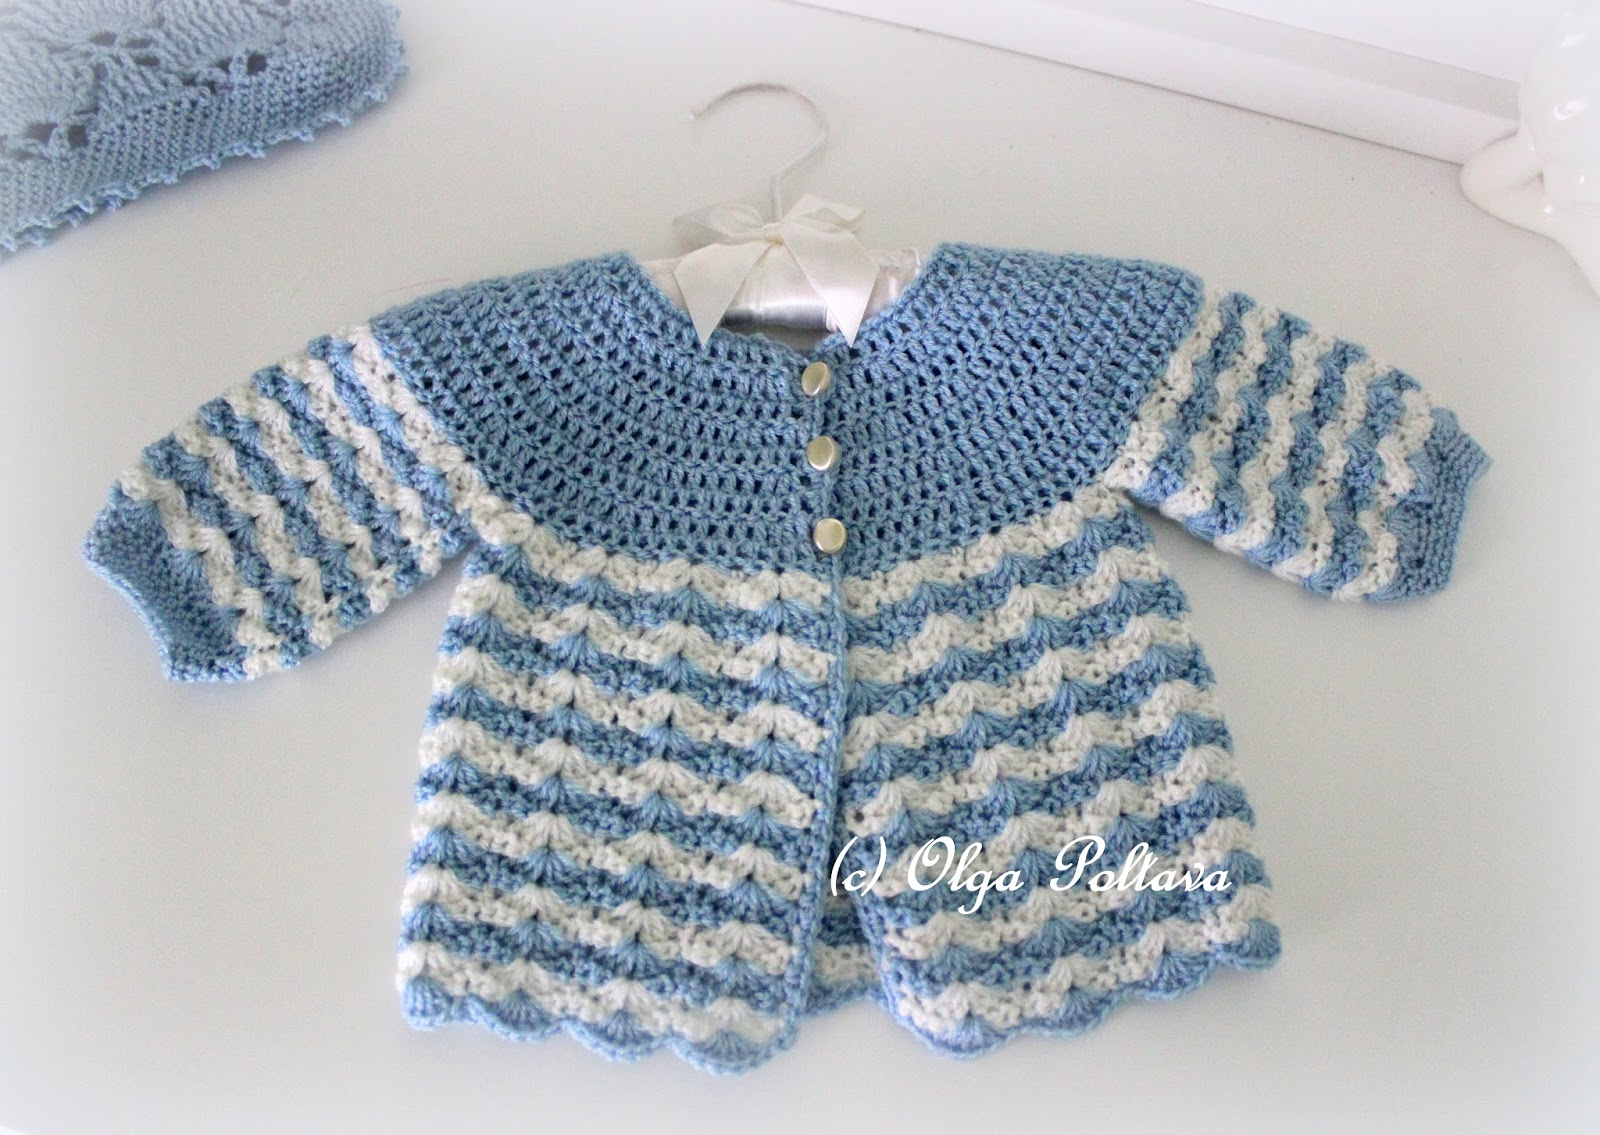 Crocheting Uk : Lacy Crochet: Newborn Baby Crochet Sweater